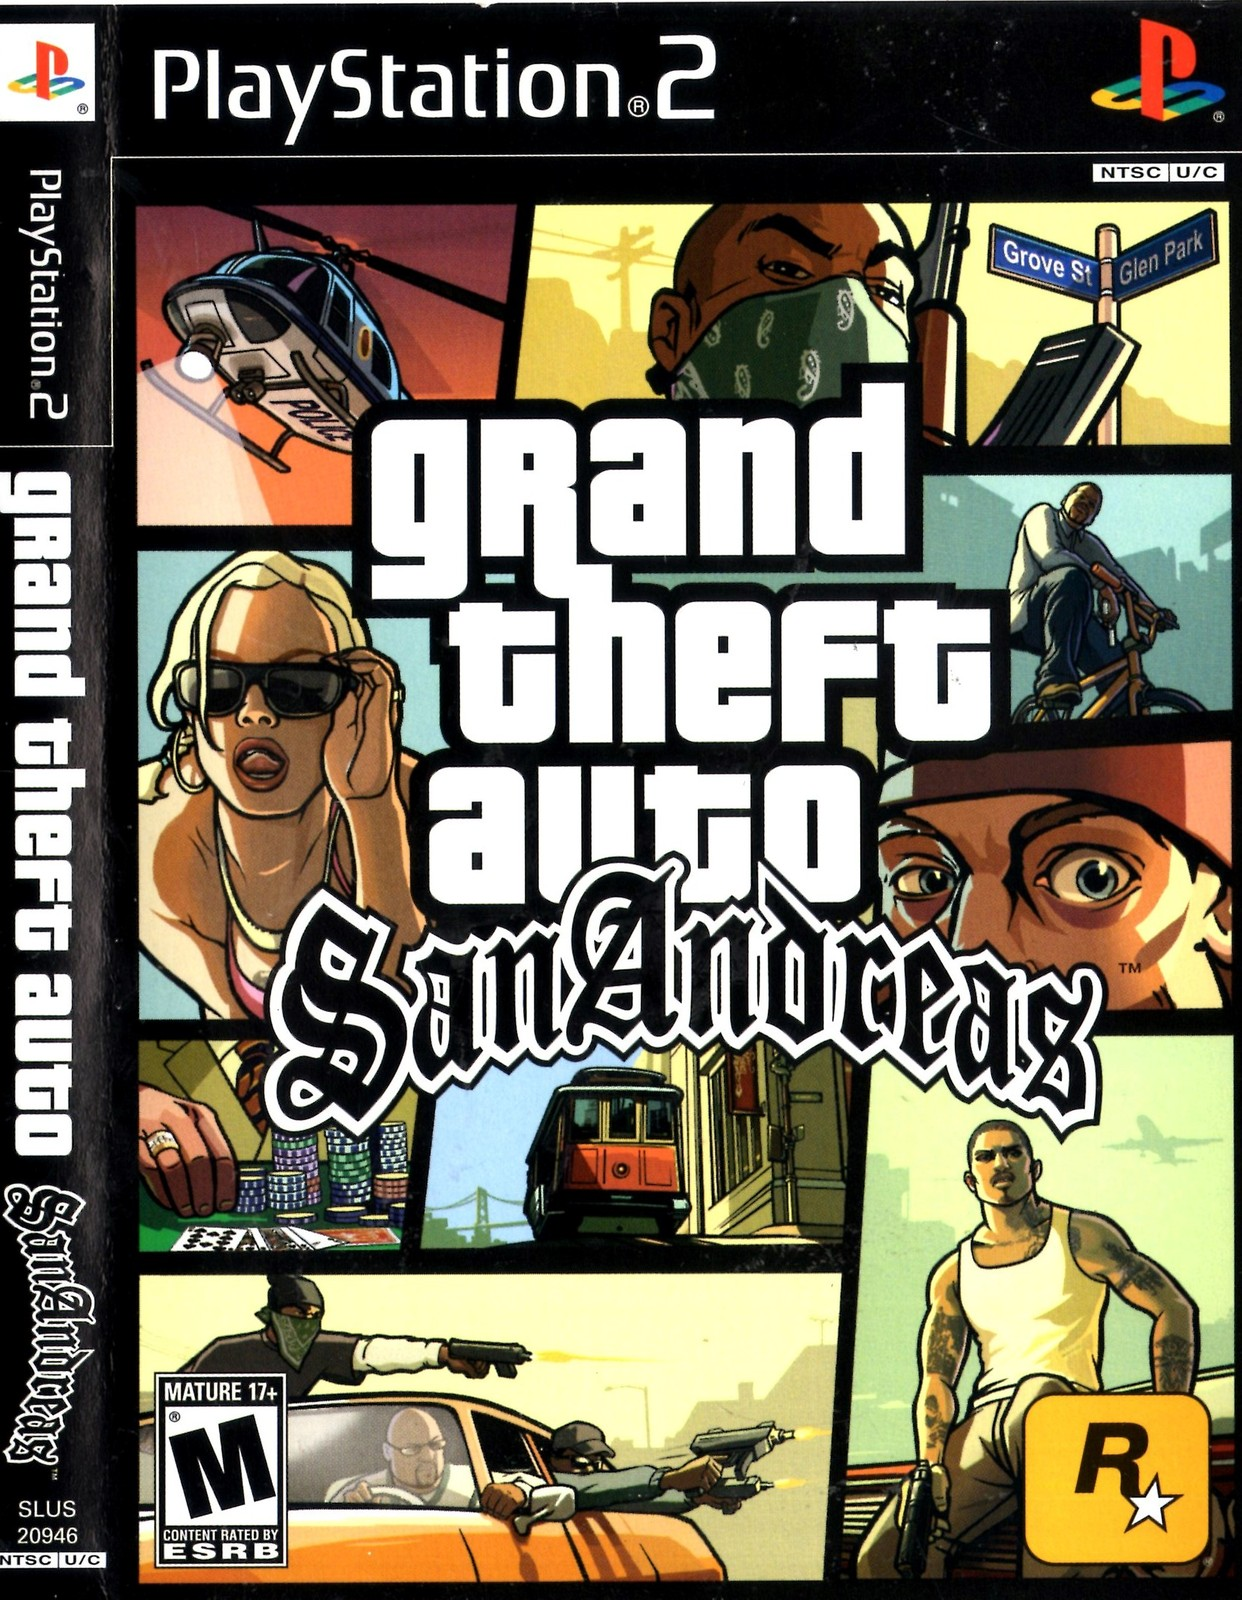 Primary image for PlayStation 2 - Grand Theft Auto San Andreas